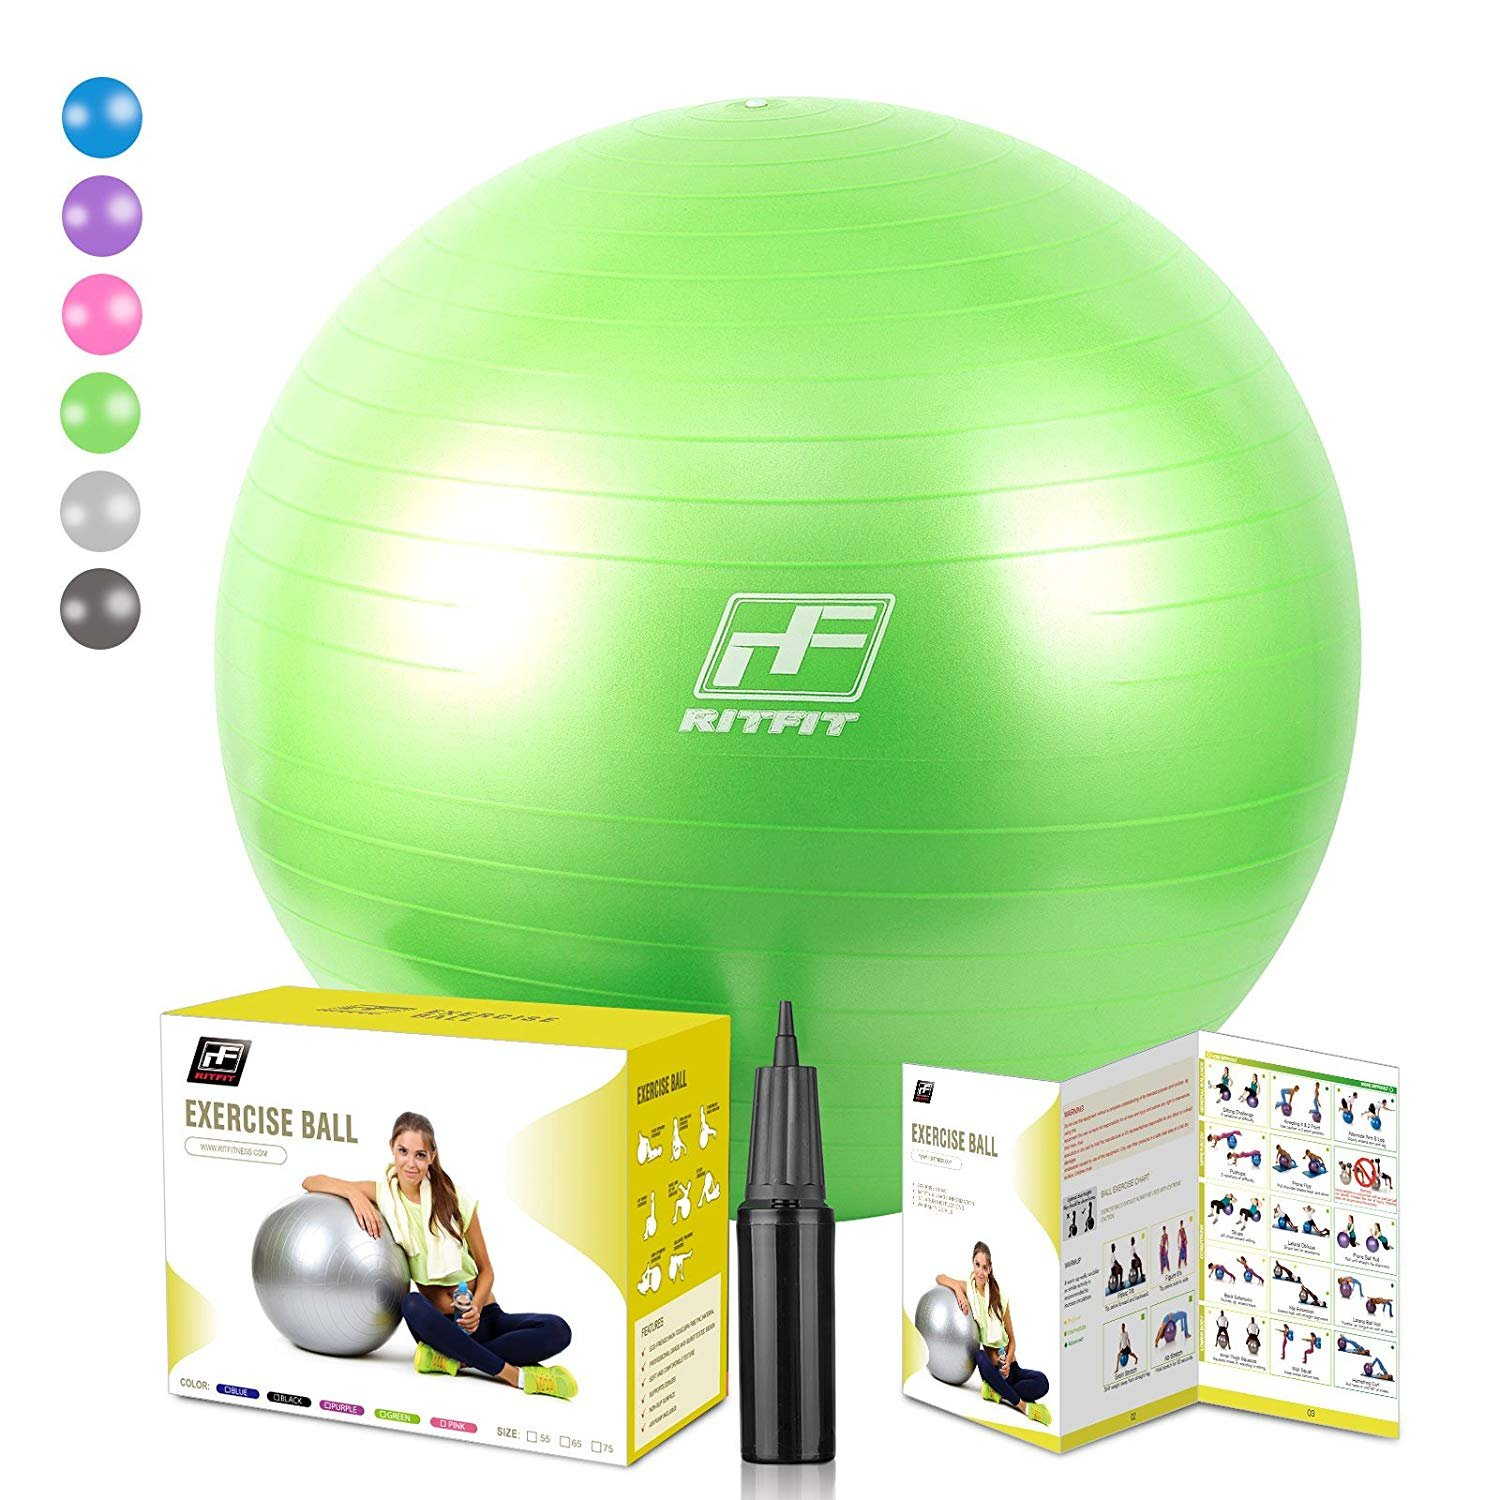 RitFit 2000lbs Exercise Stability Ball, Anti Burst for Pilates Yoga Gym Fitness,Use As Desk Chair, Hand Pump& Workout Guide Included,Gym Quality (Green, 75cm) by RitFit